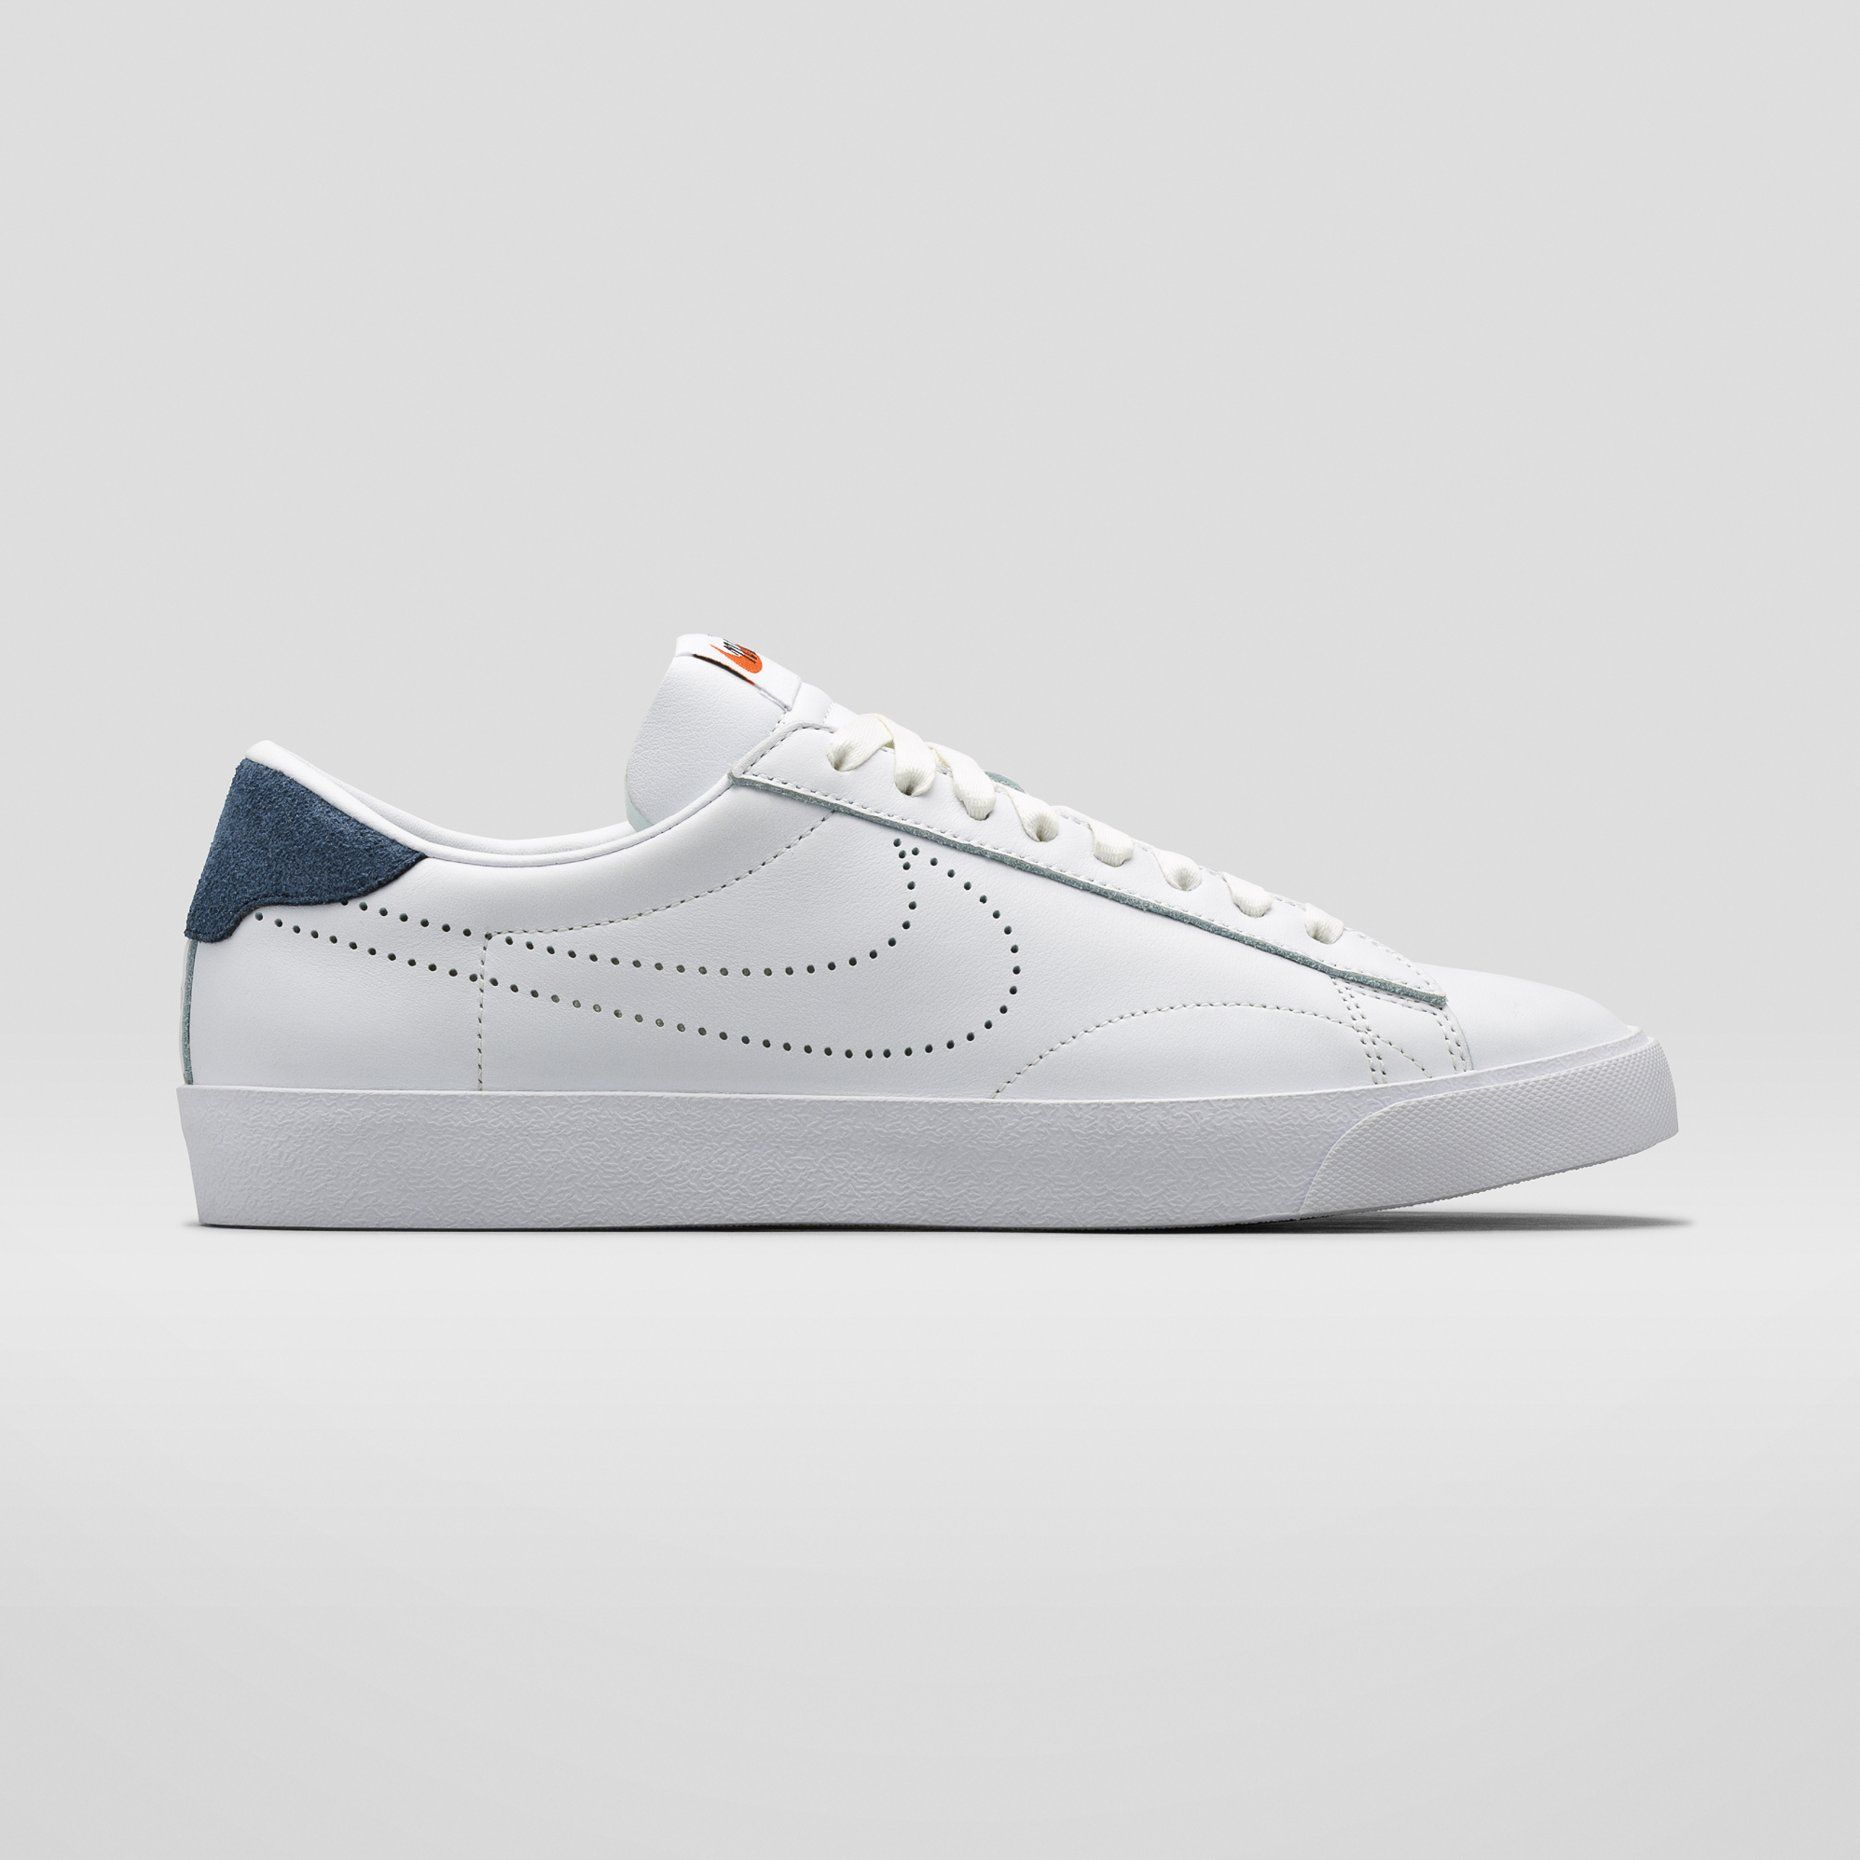 save off 8740d 8ac8d Nike x Japan s Fragment Design with a perforated swoosh.  110